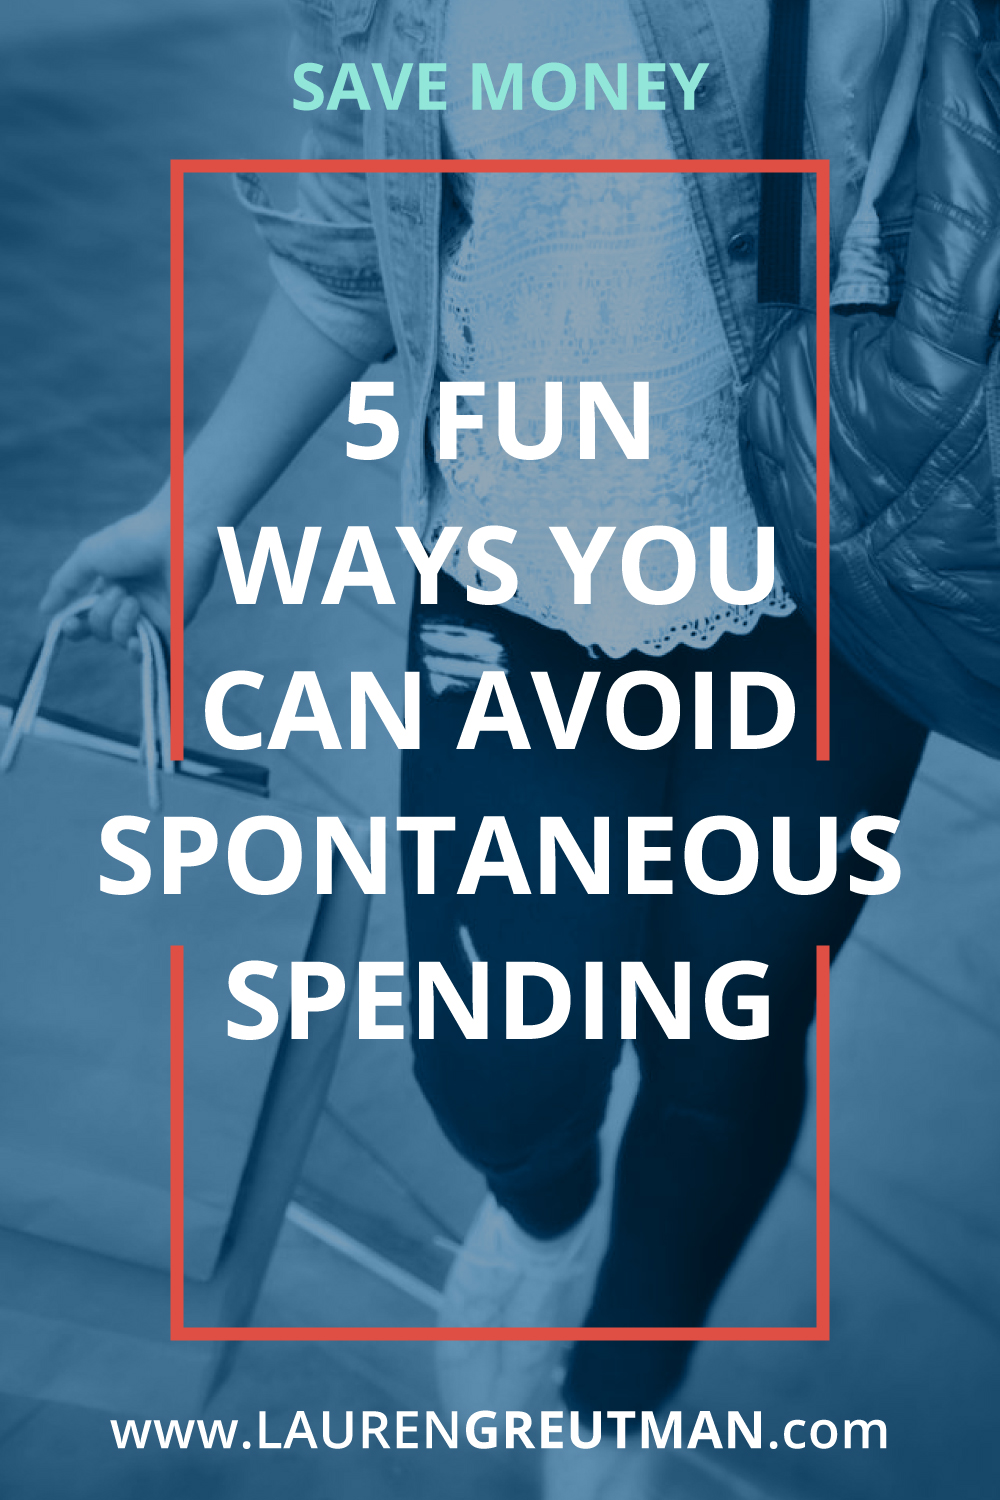 Whether you consider yourself a Spender or not, Impulse Buying or spontaneous spending can be your budget's downfall. Here are 5 FUN ways to curb it!